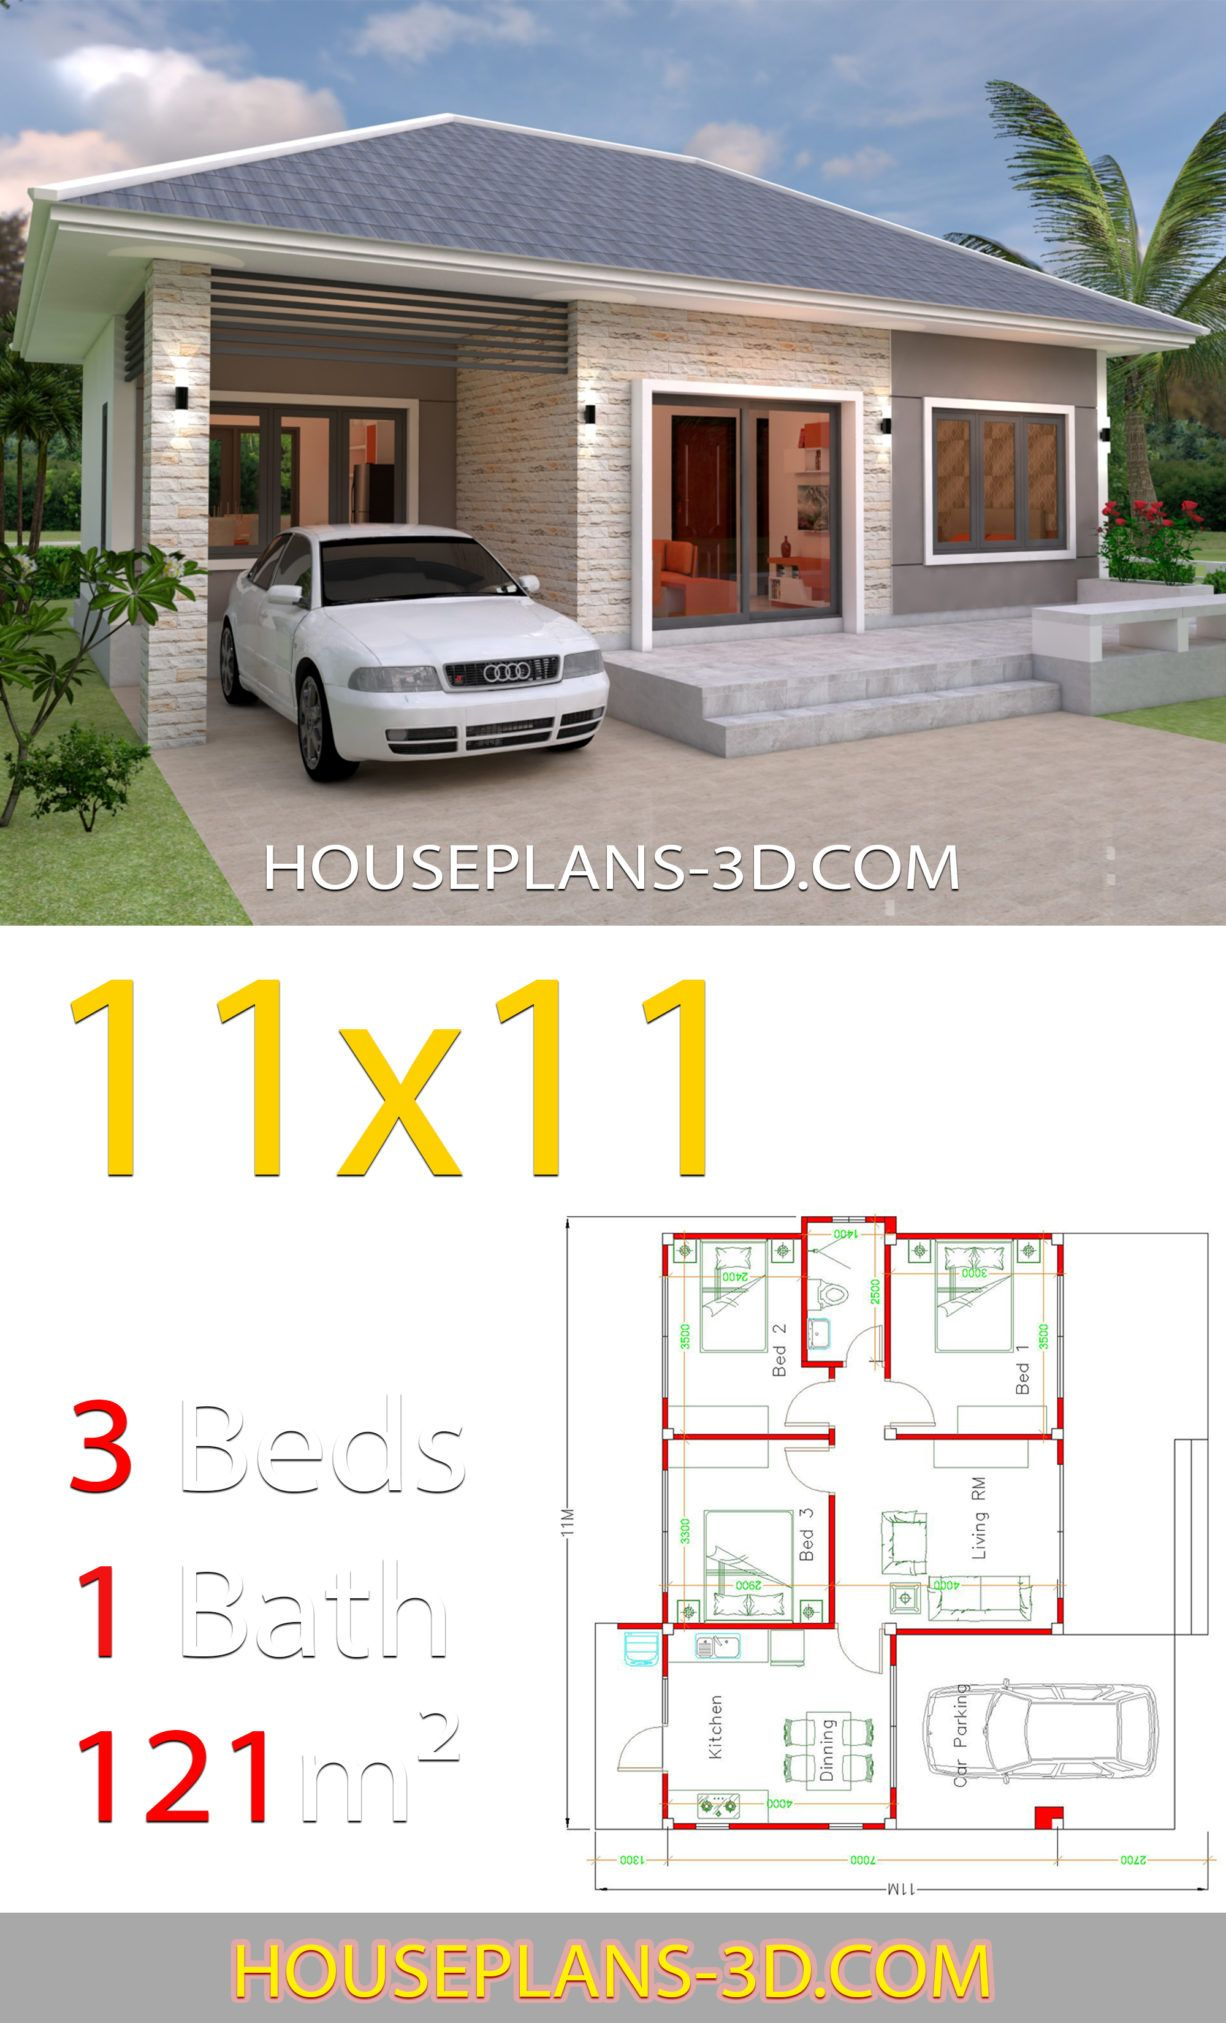 Simple House Design Plans 11x11 With 3 Bedrooms Full Plans House Plans 3d In 2020 Simple House Design Architectural House Plans House Plans